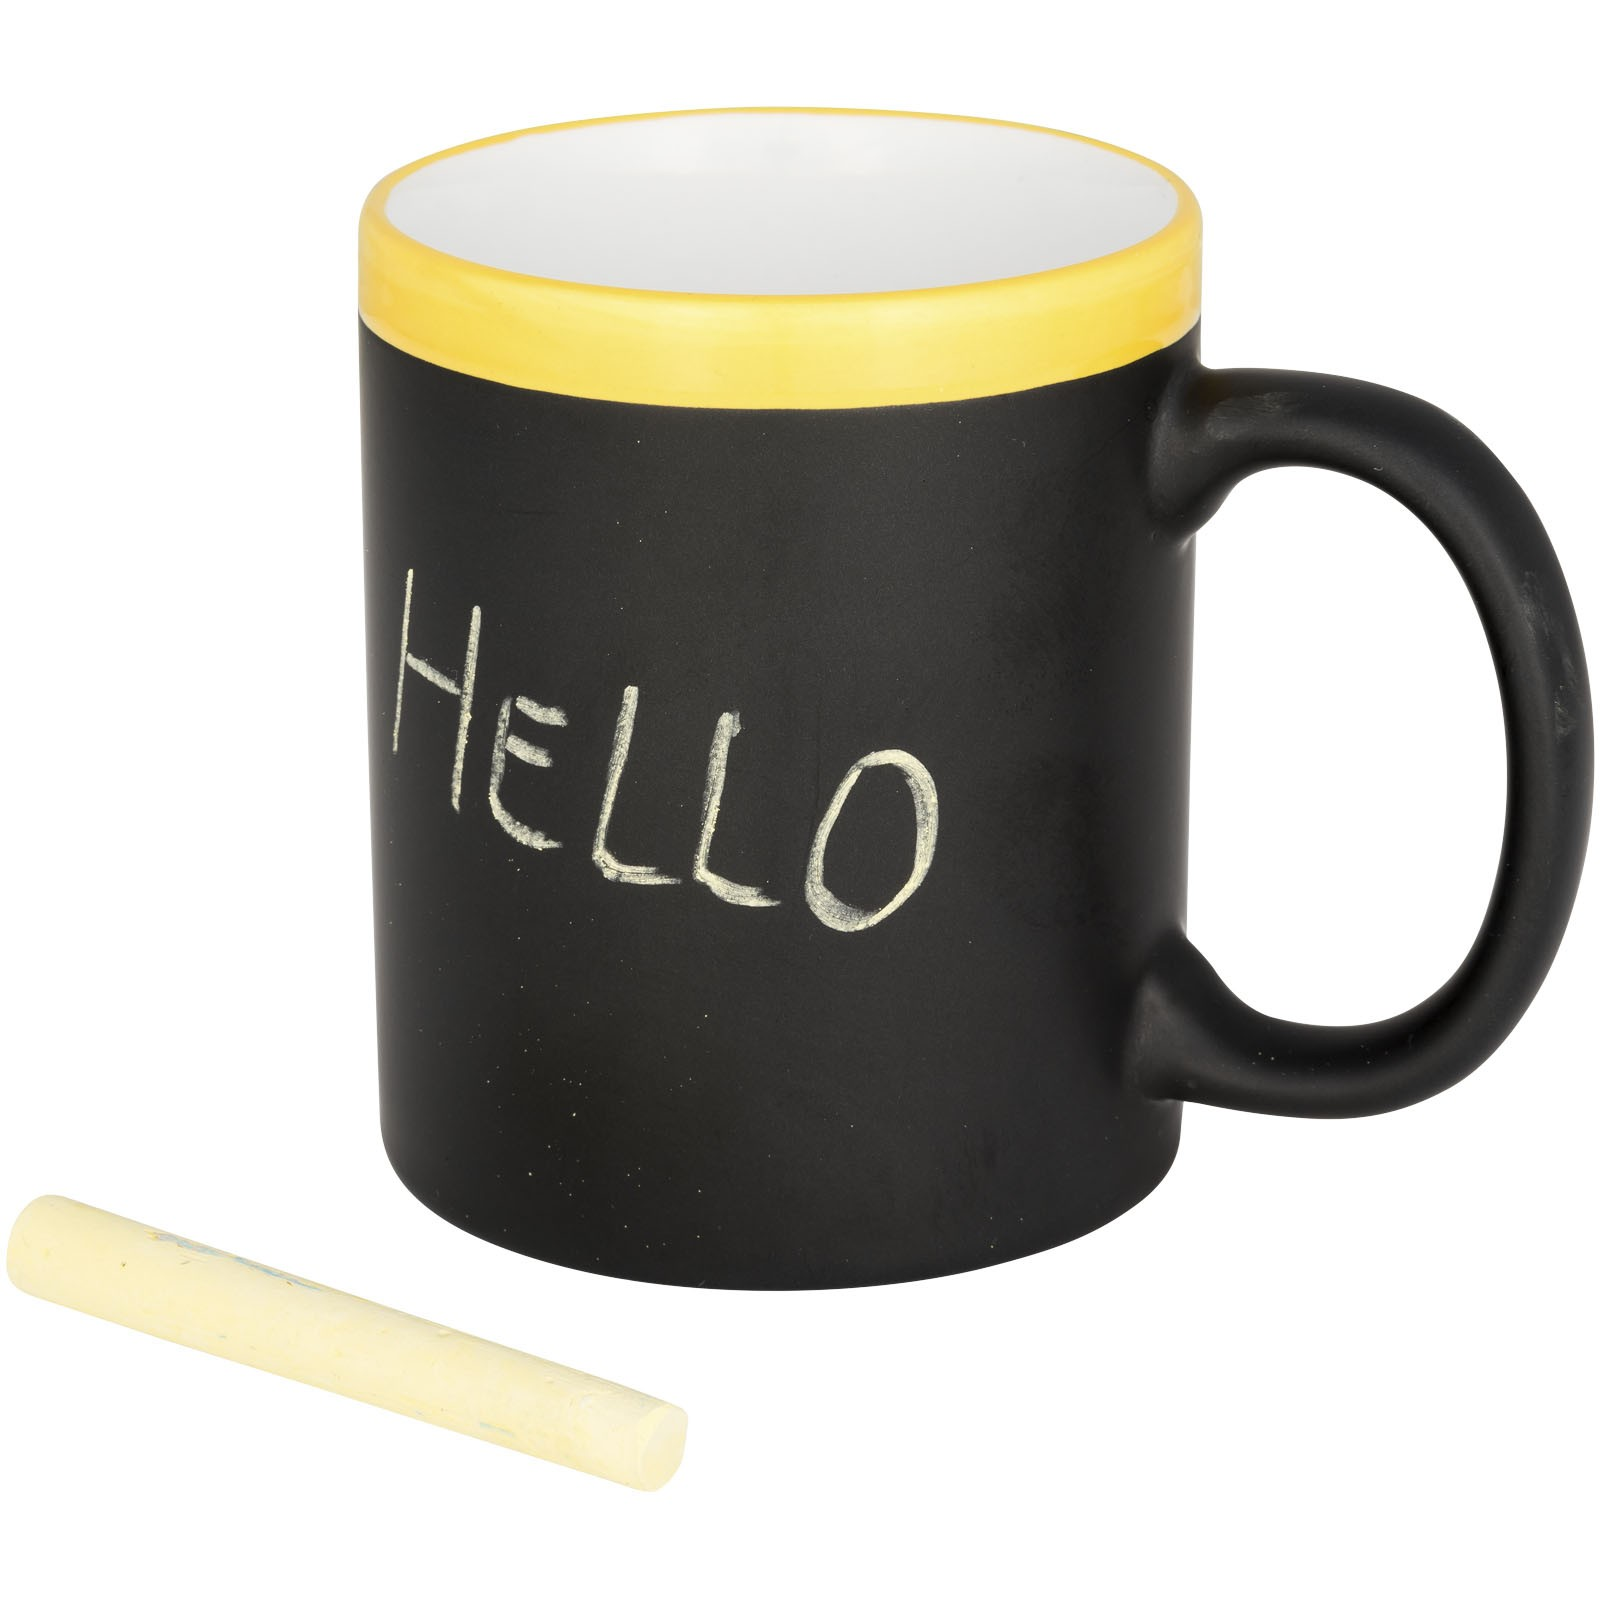 Chalk-write 330 ml Keramiktasse - gelb